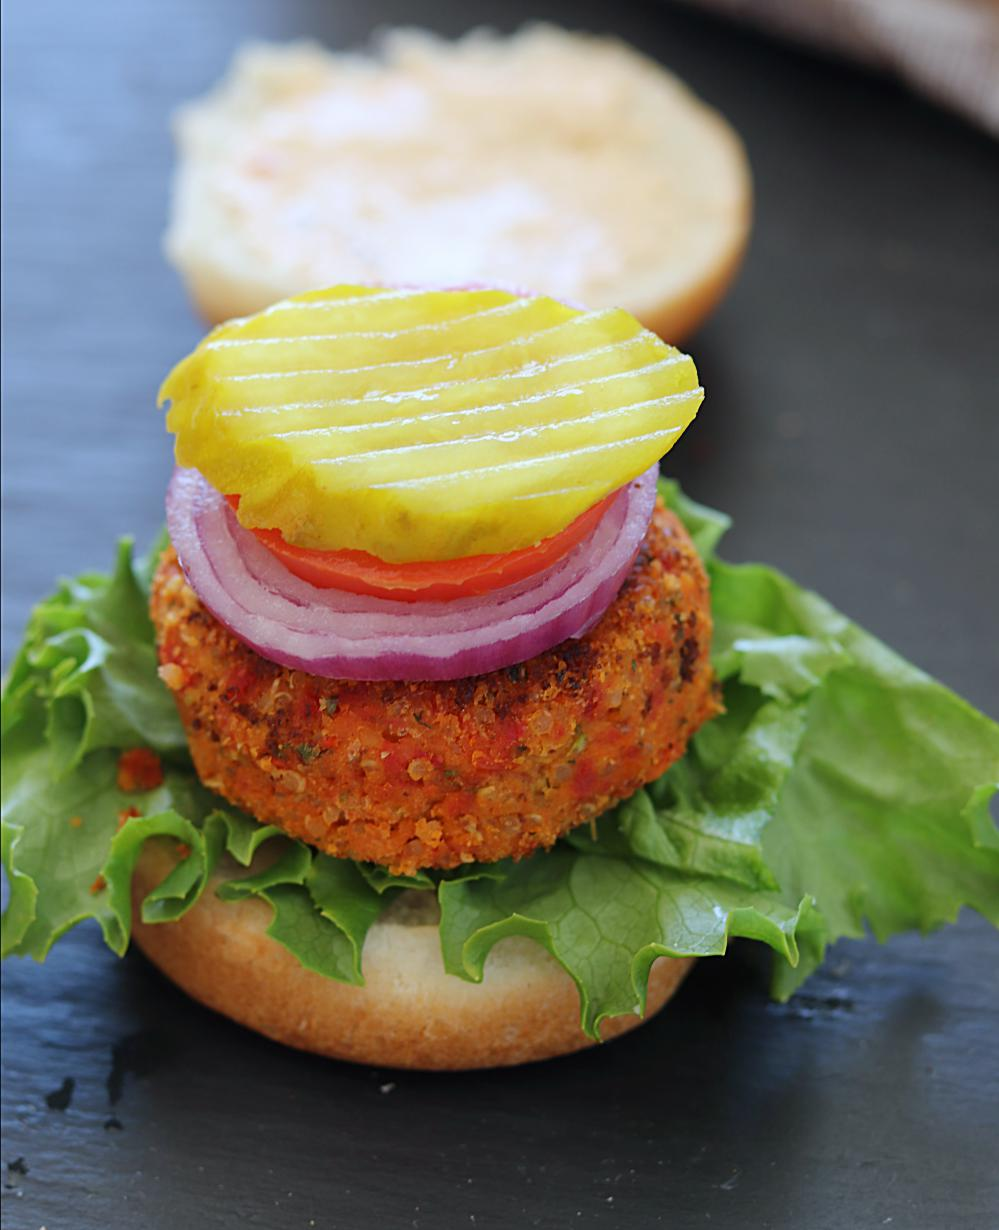 Assemble the sundried tomato burger